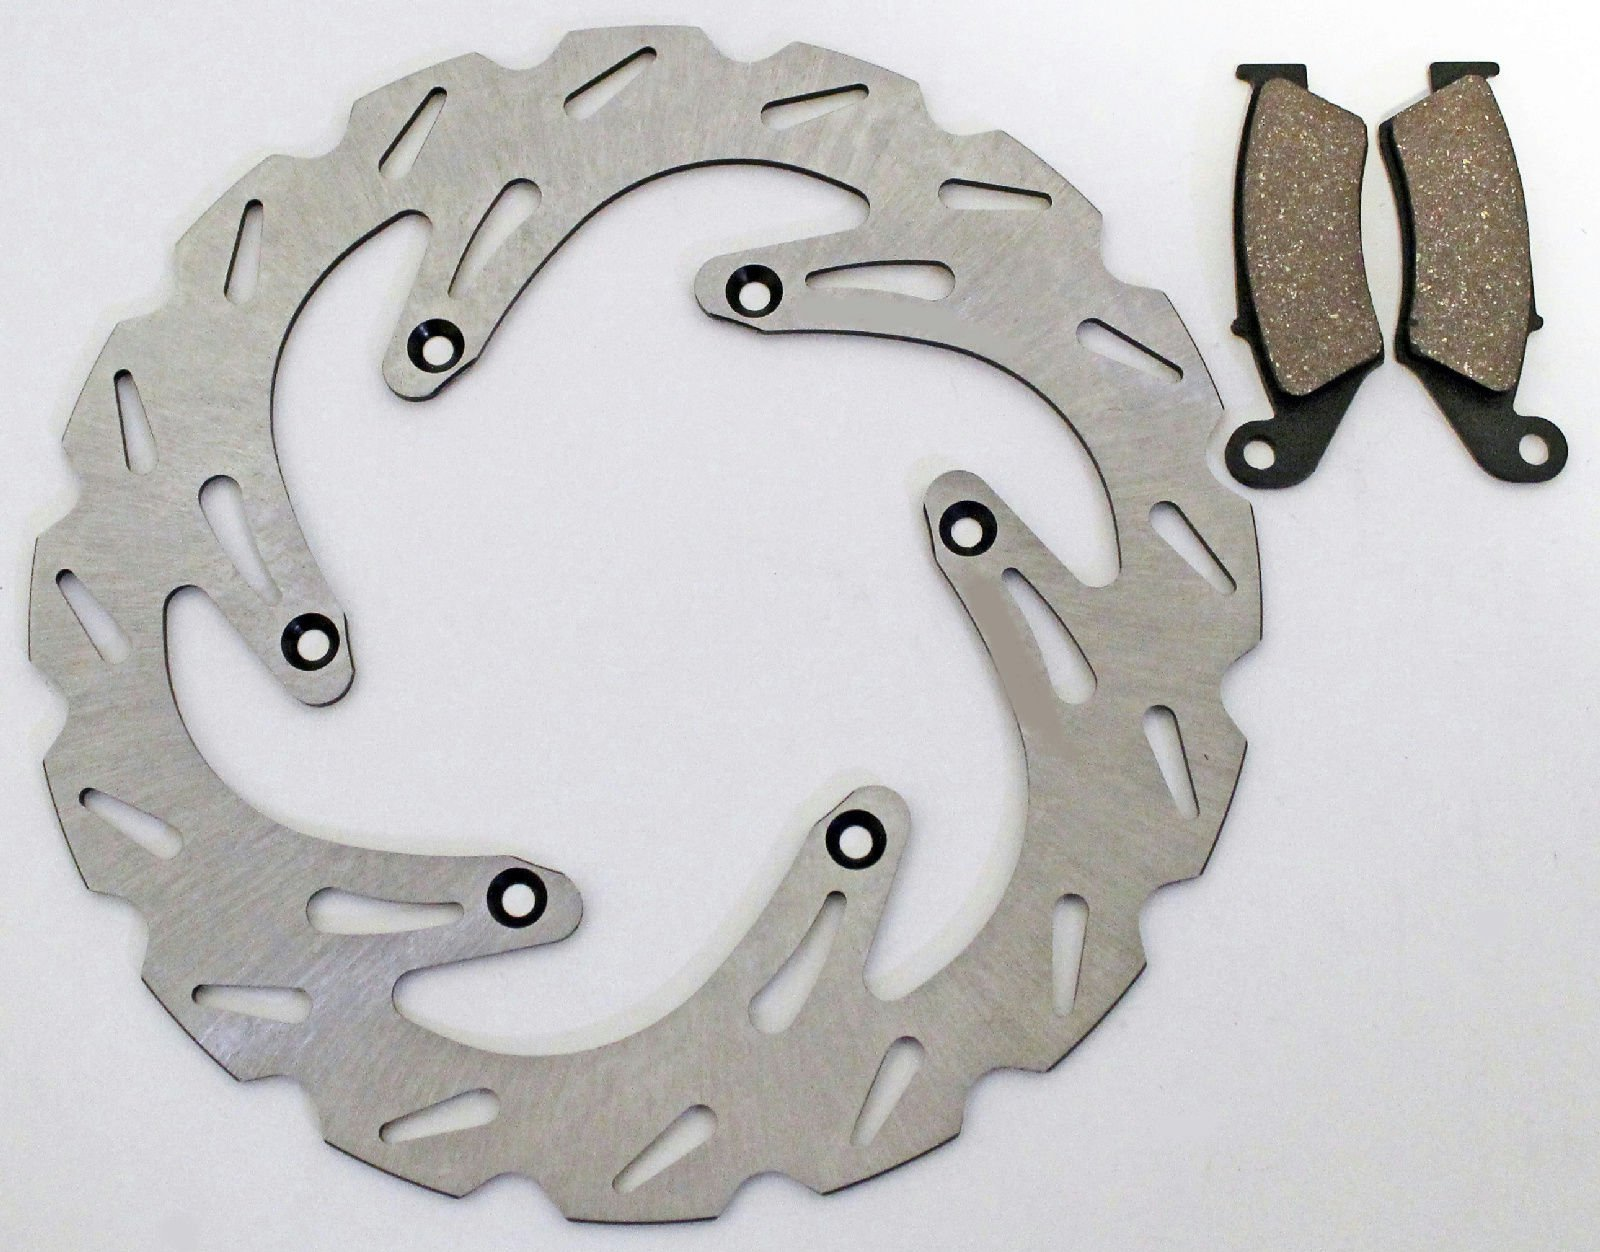 Yamaha 2003-2009 And 2011-2013 WR450F Front Brake Pads And Sport Brake Rotor